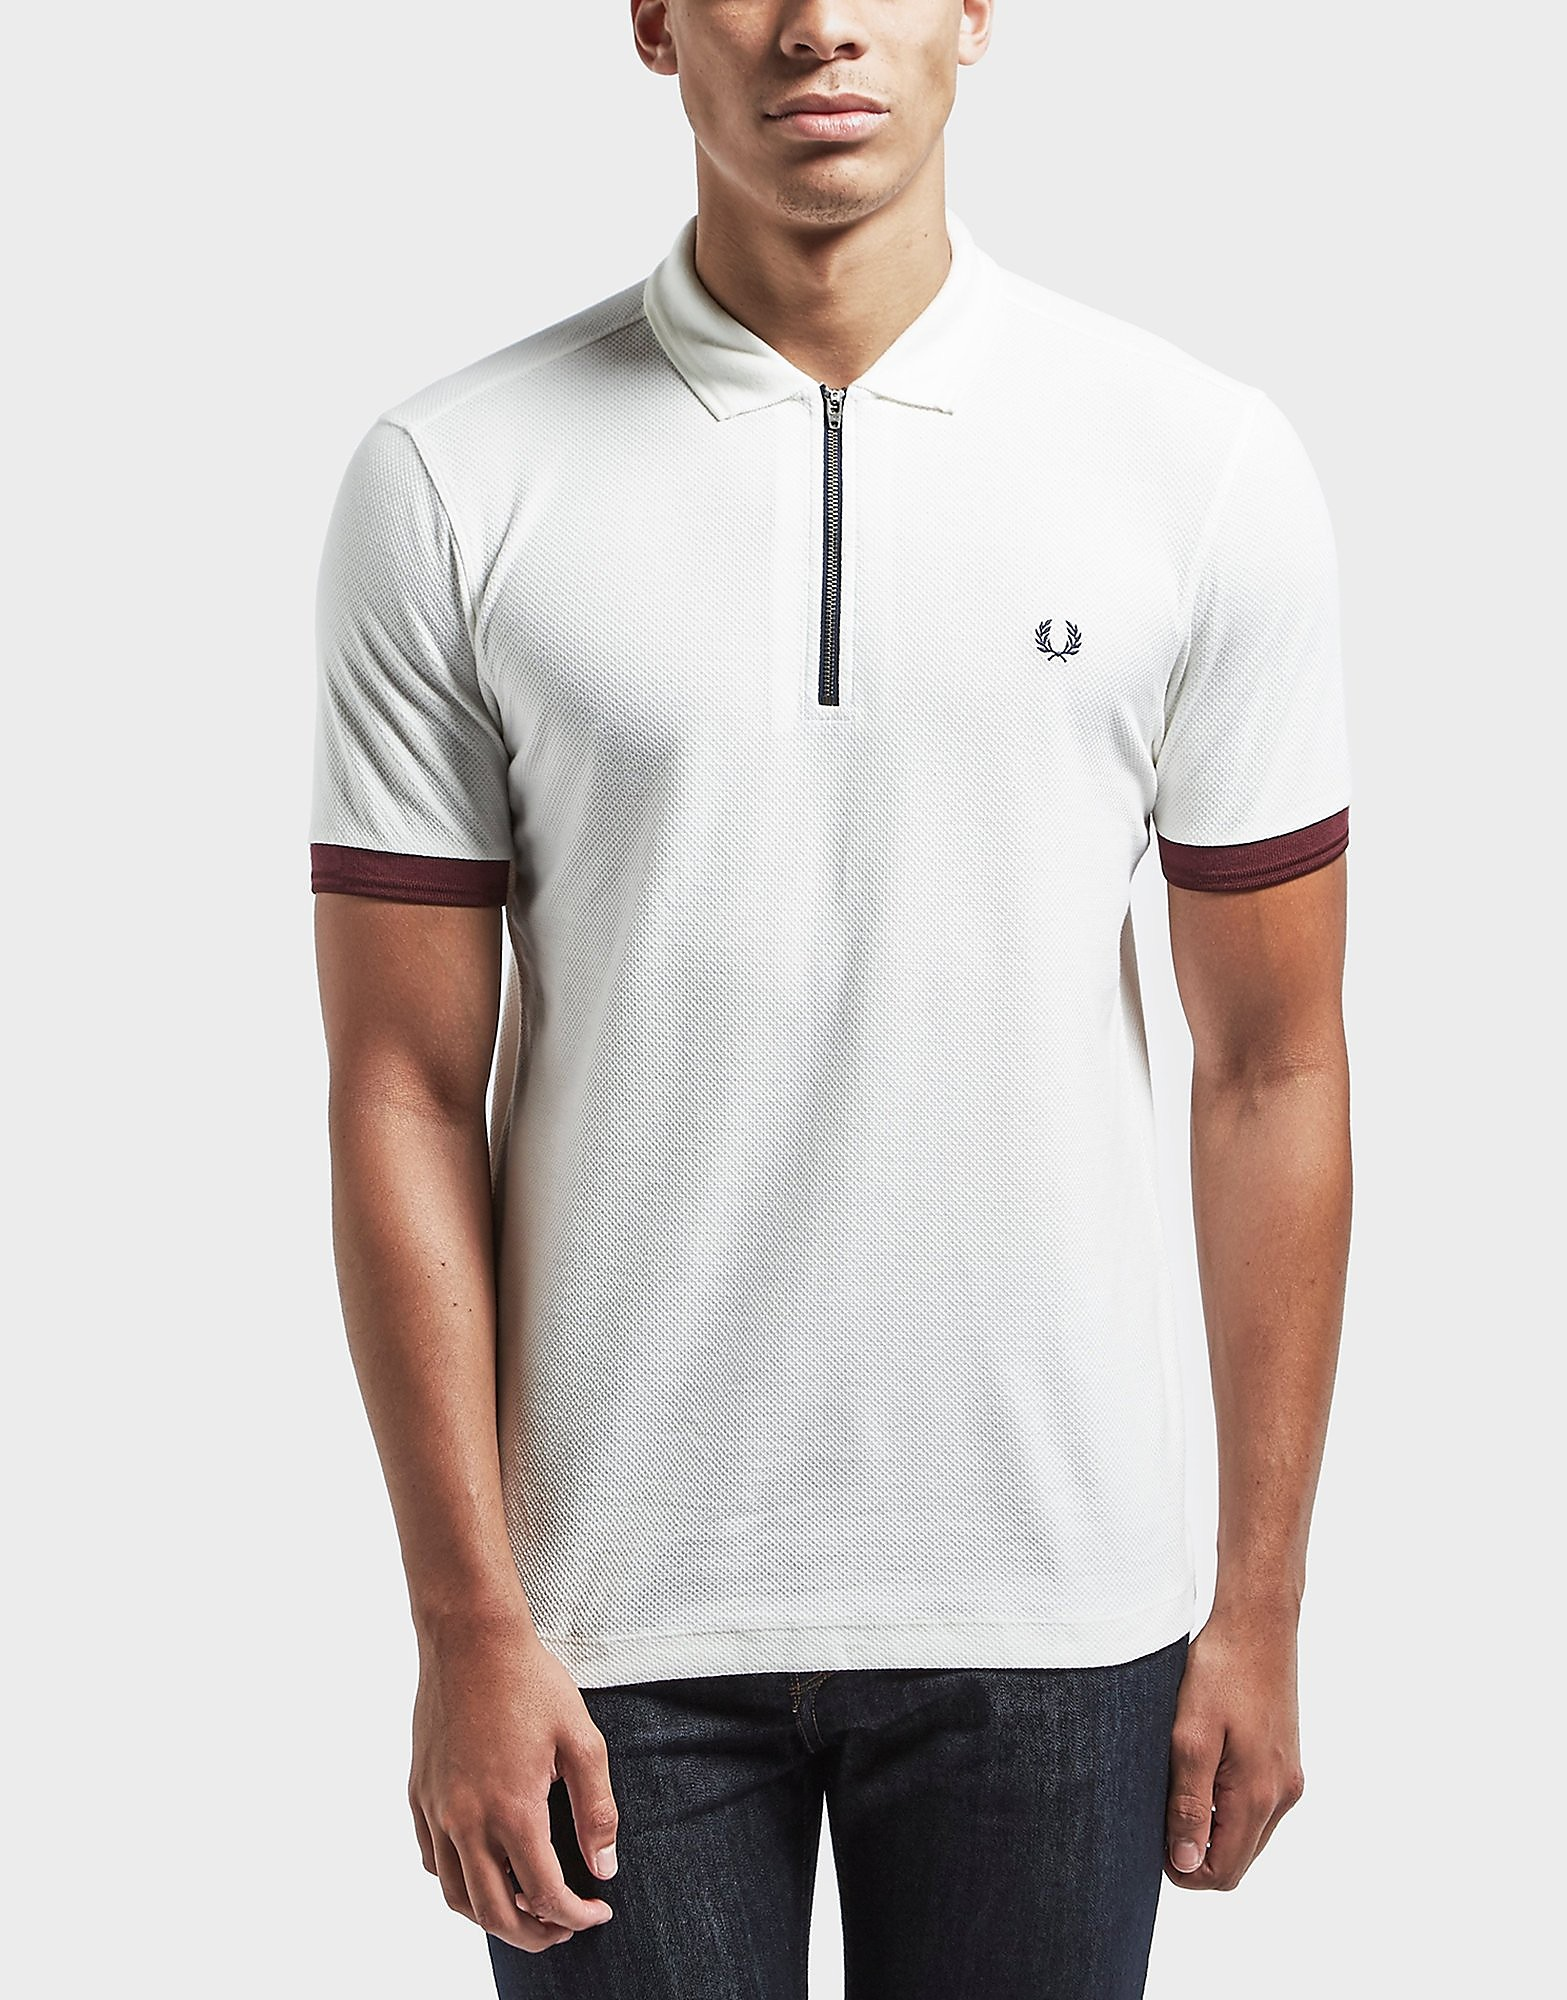 Fred Perry Pique Zip Neck Short Sleeve Polo Shirt